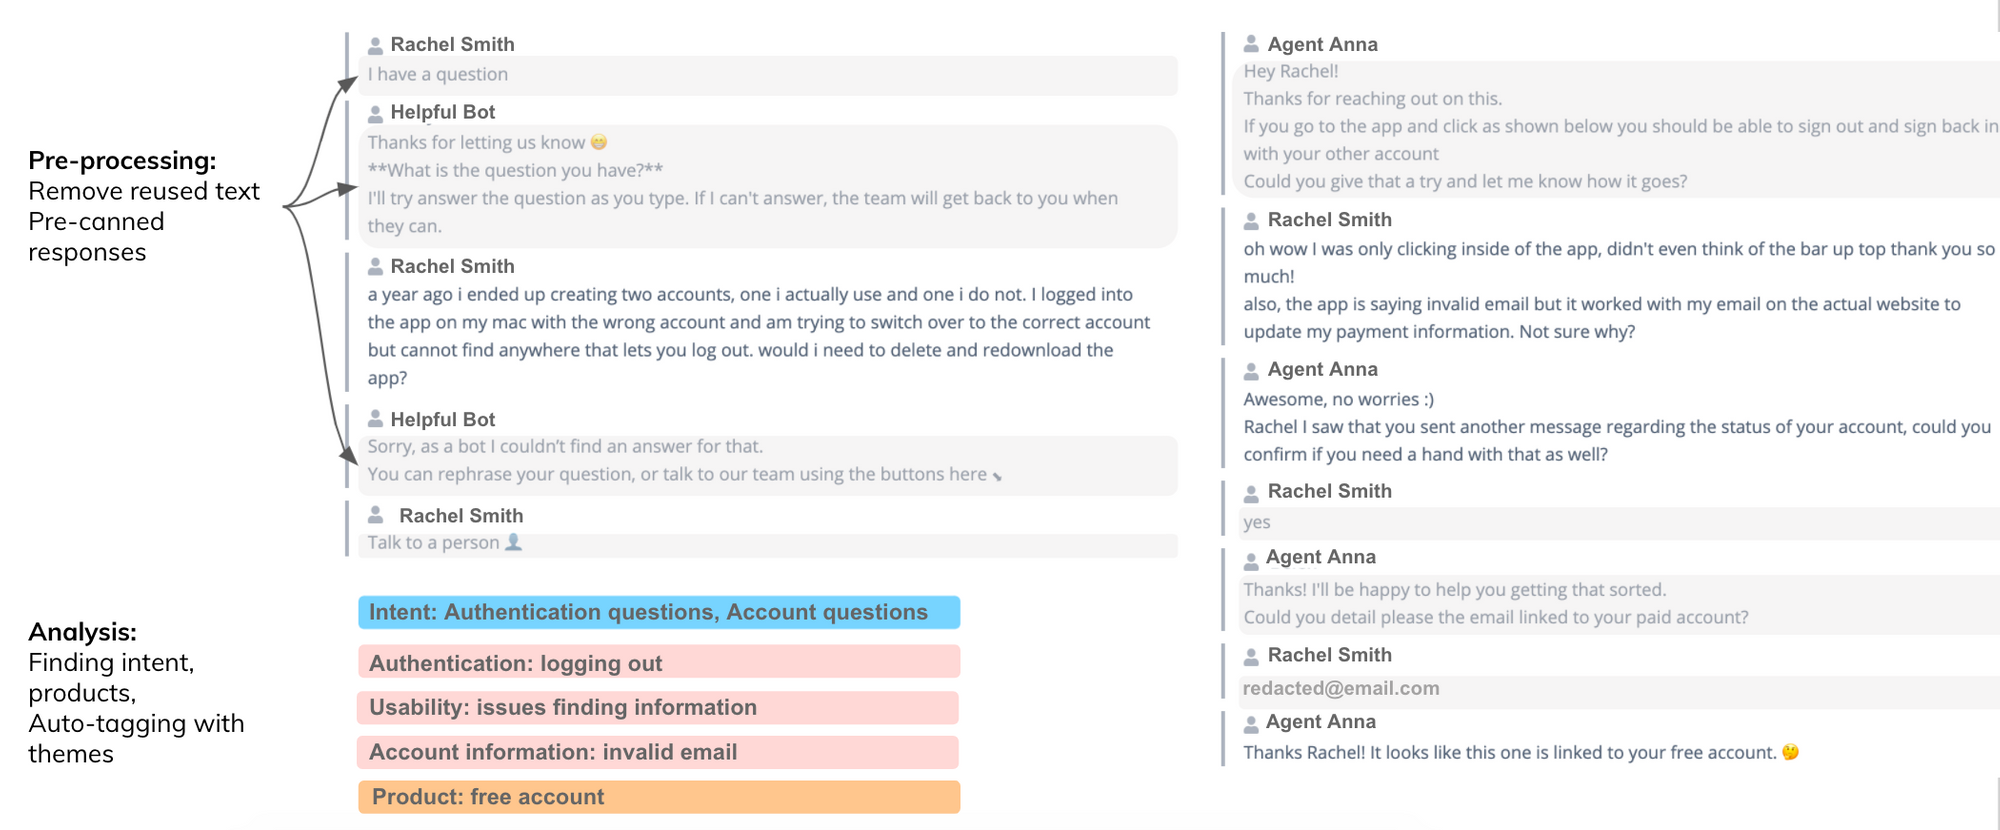 Thematic overcomes the traditional challenges of chat analytics - Thematic removes reused text and pre-canned responses. It can detect intent, products mentioned in conversation, and find themes in the chat text.